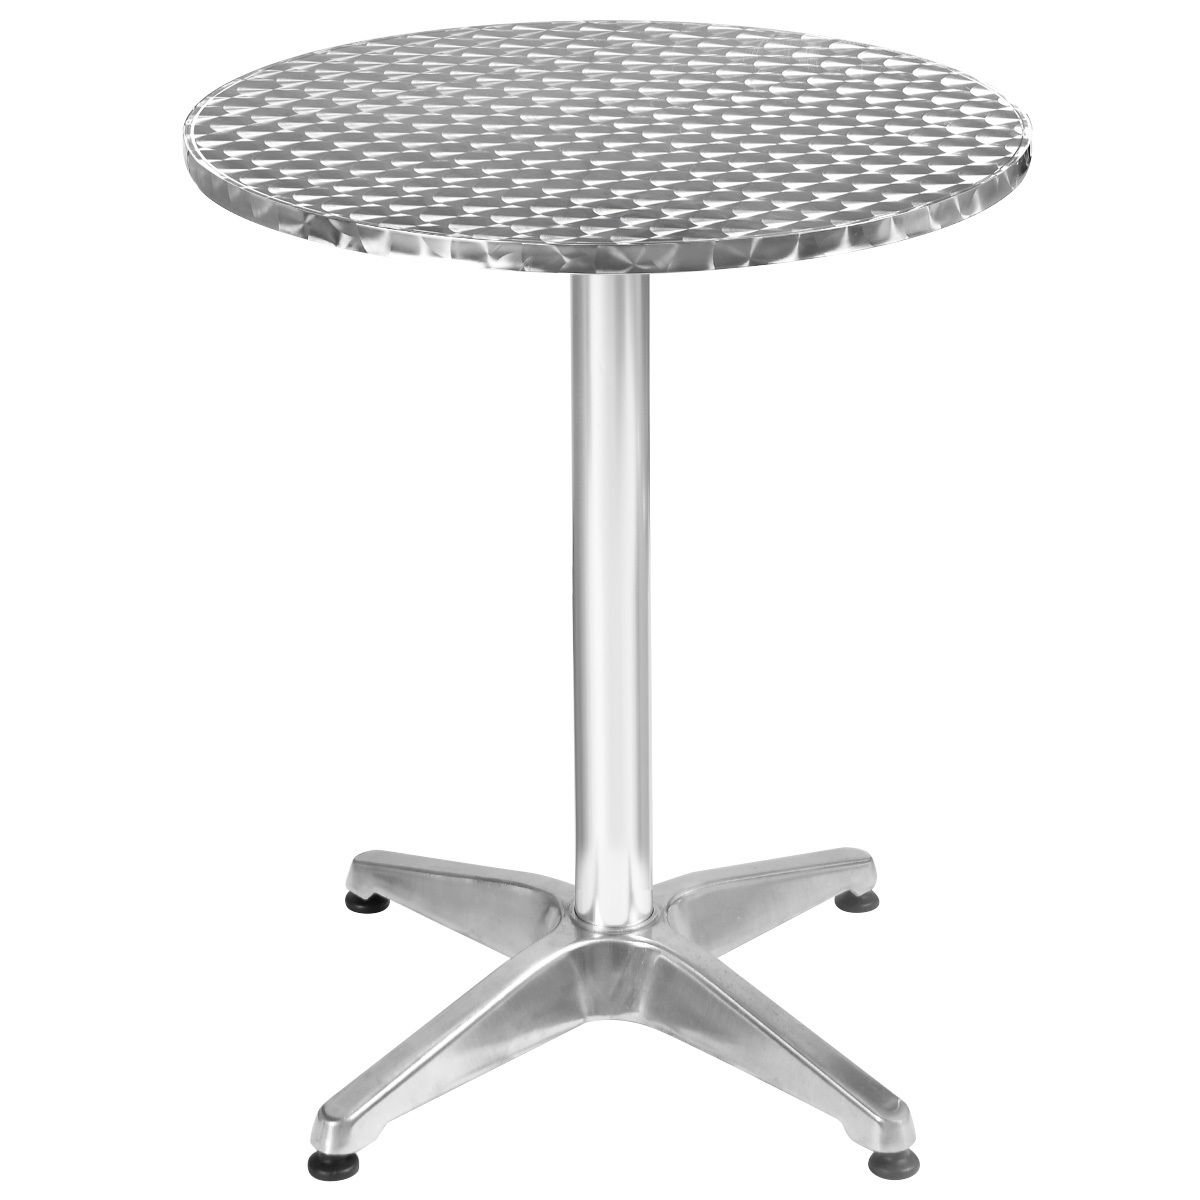 Giantex Bar Height Pub Table Bistro Bar Table Stainless Steel Square Top Indoor-Outdoor Furniture Bar Round Portable Table, Silver (23.5'' Round)